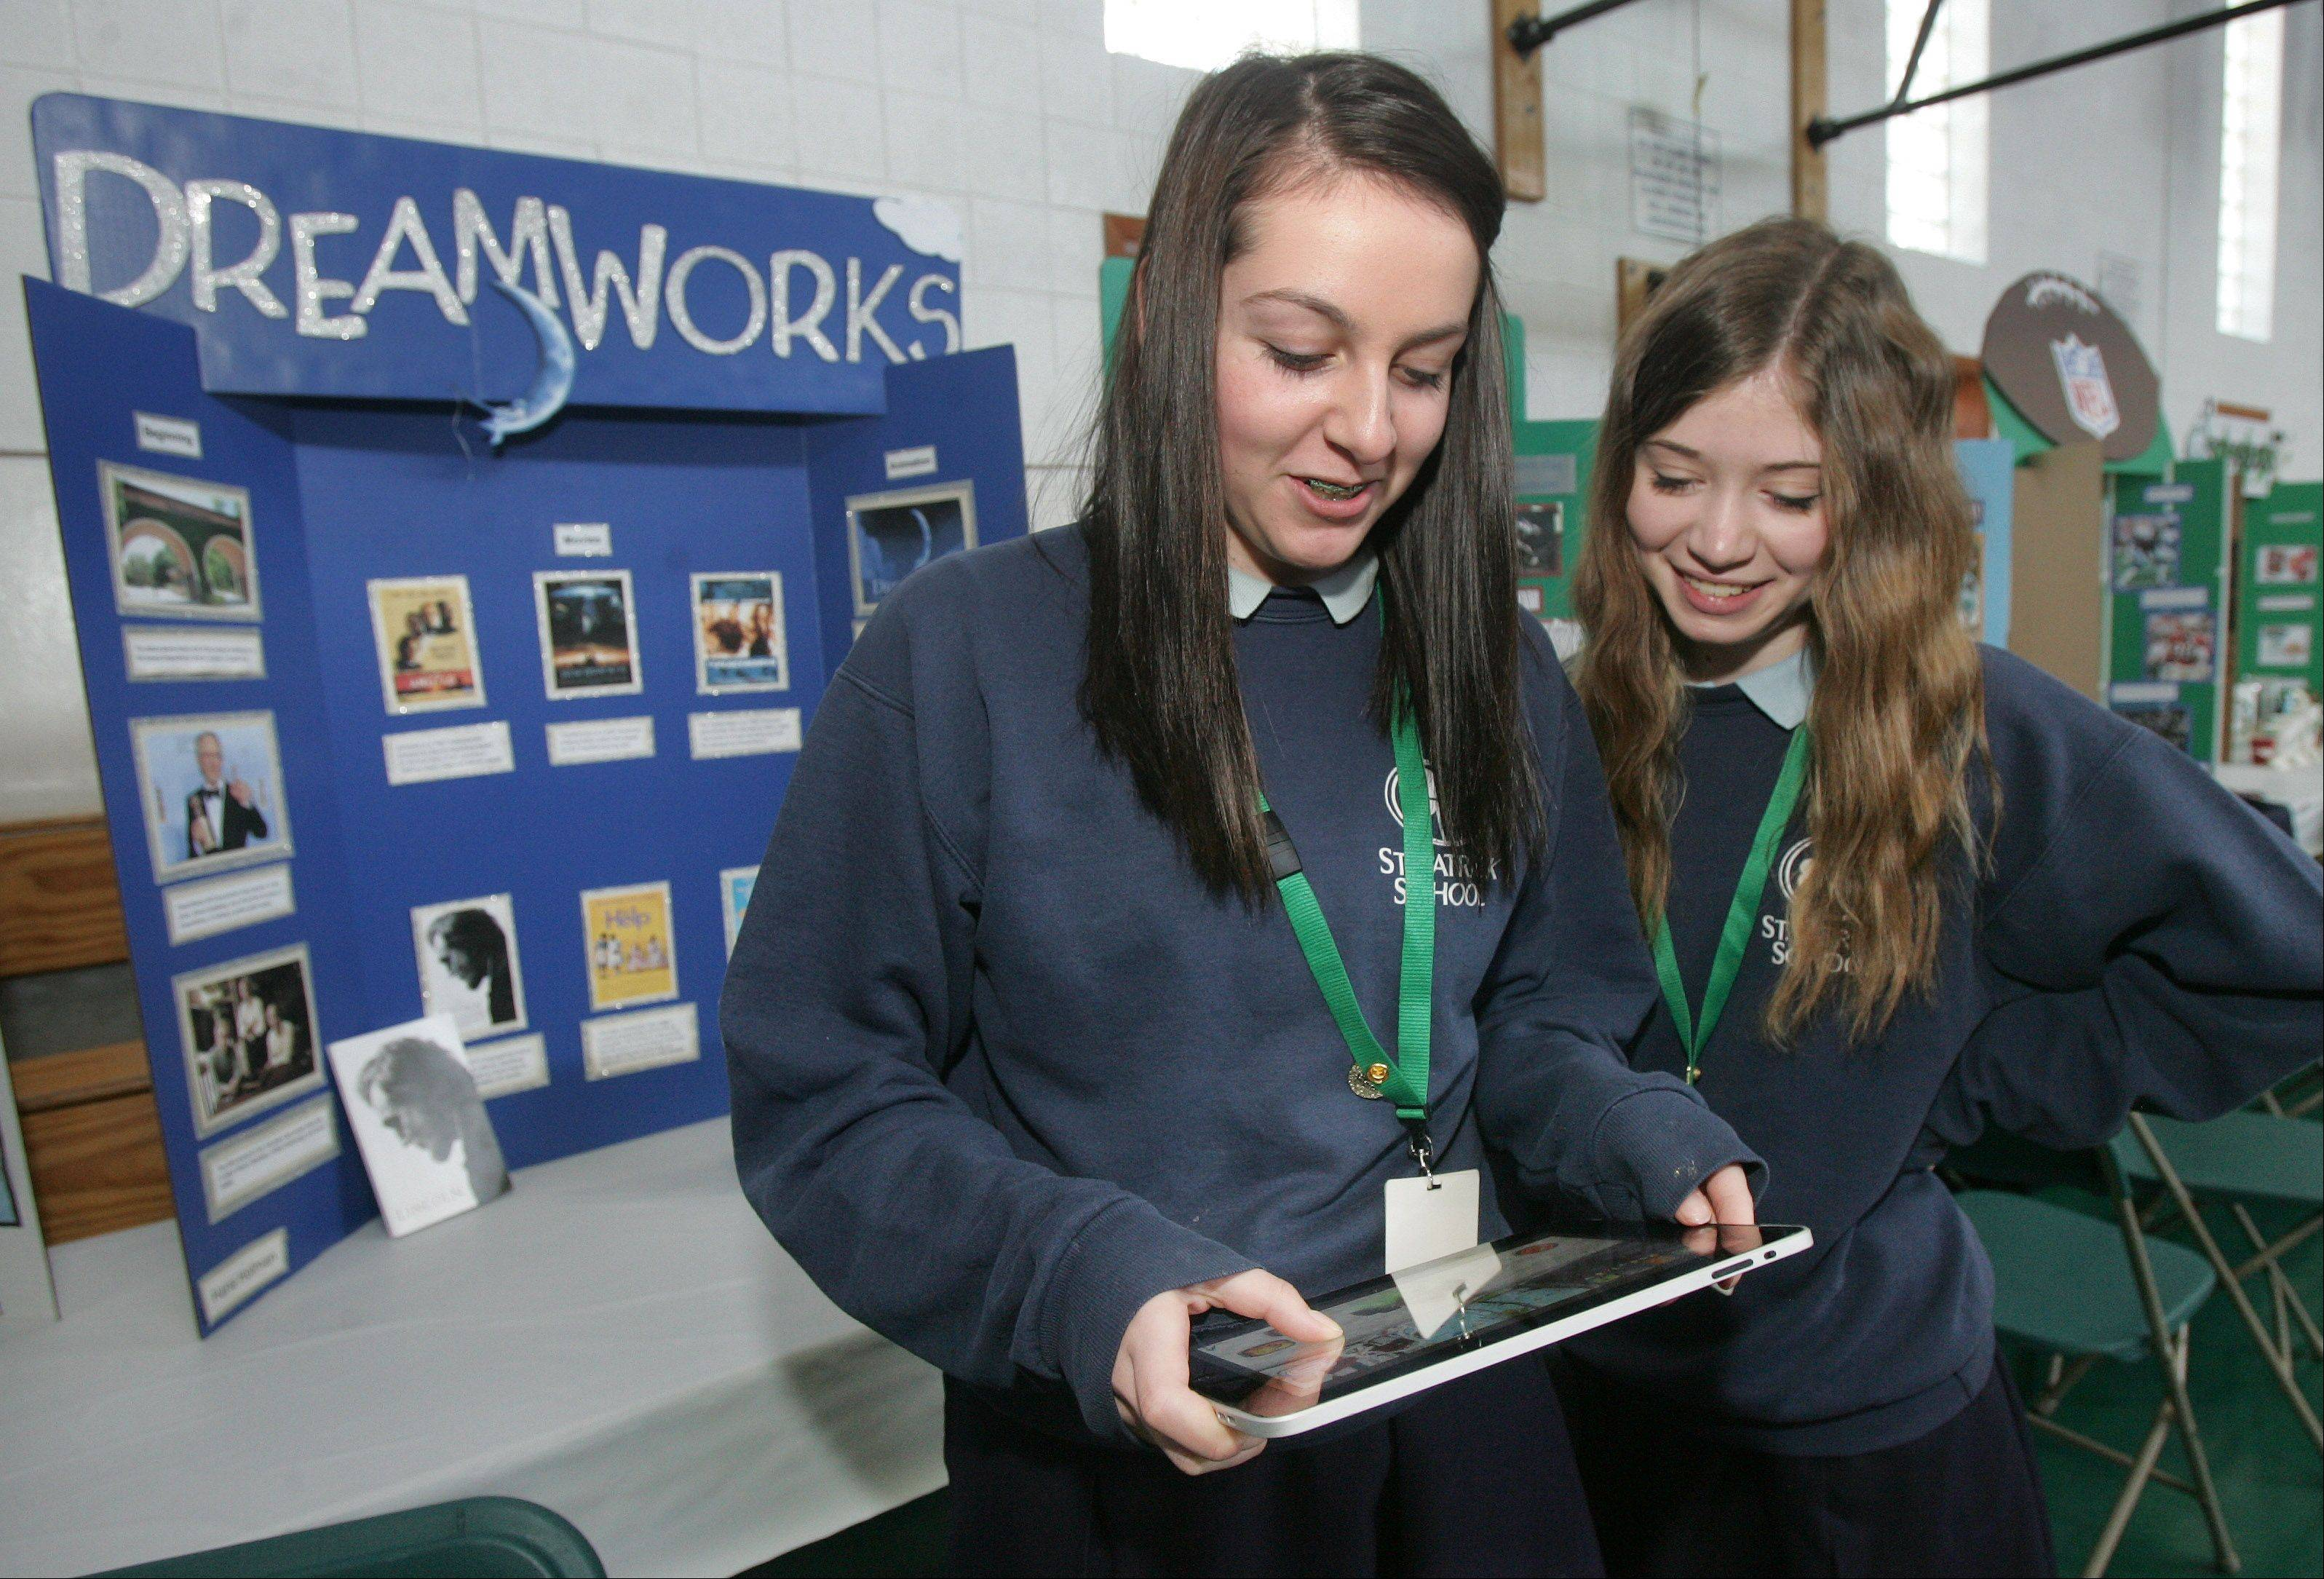 Eighth graders Julia Ward, left, and Hana Holman use an iPad to play a DreamWorks game called Shrek Kart during the Academic Fair Wednesday at St. Patrick Catholic School in Wadsworth.